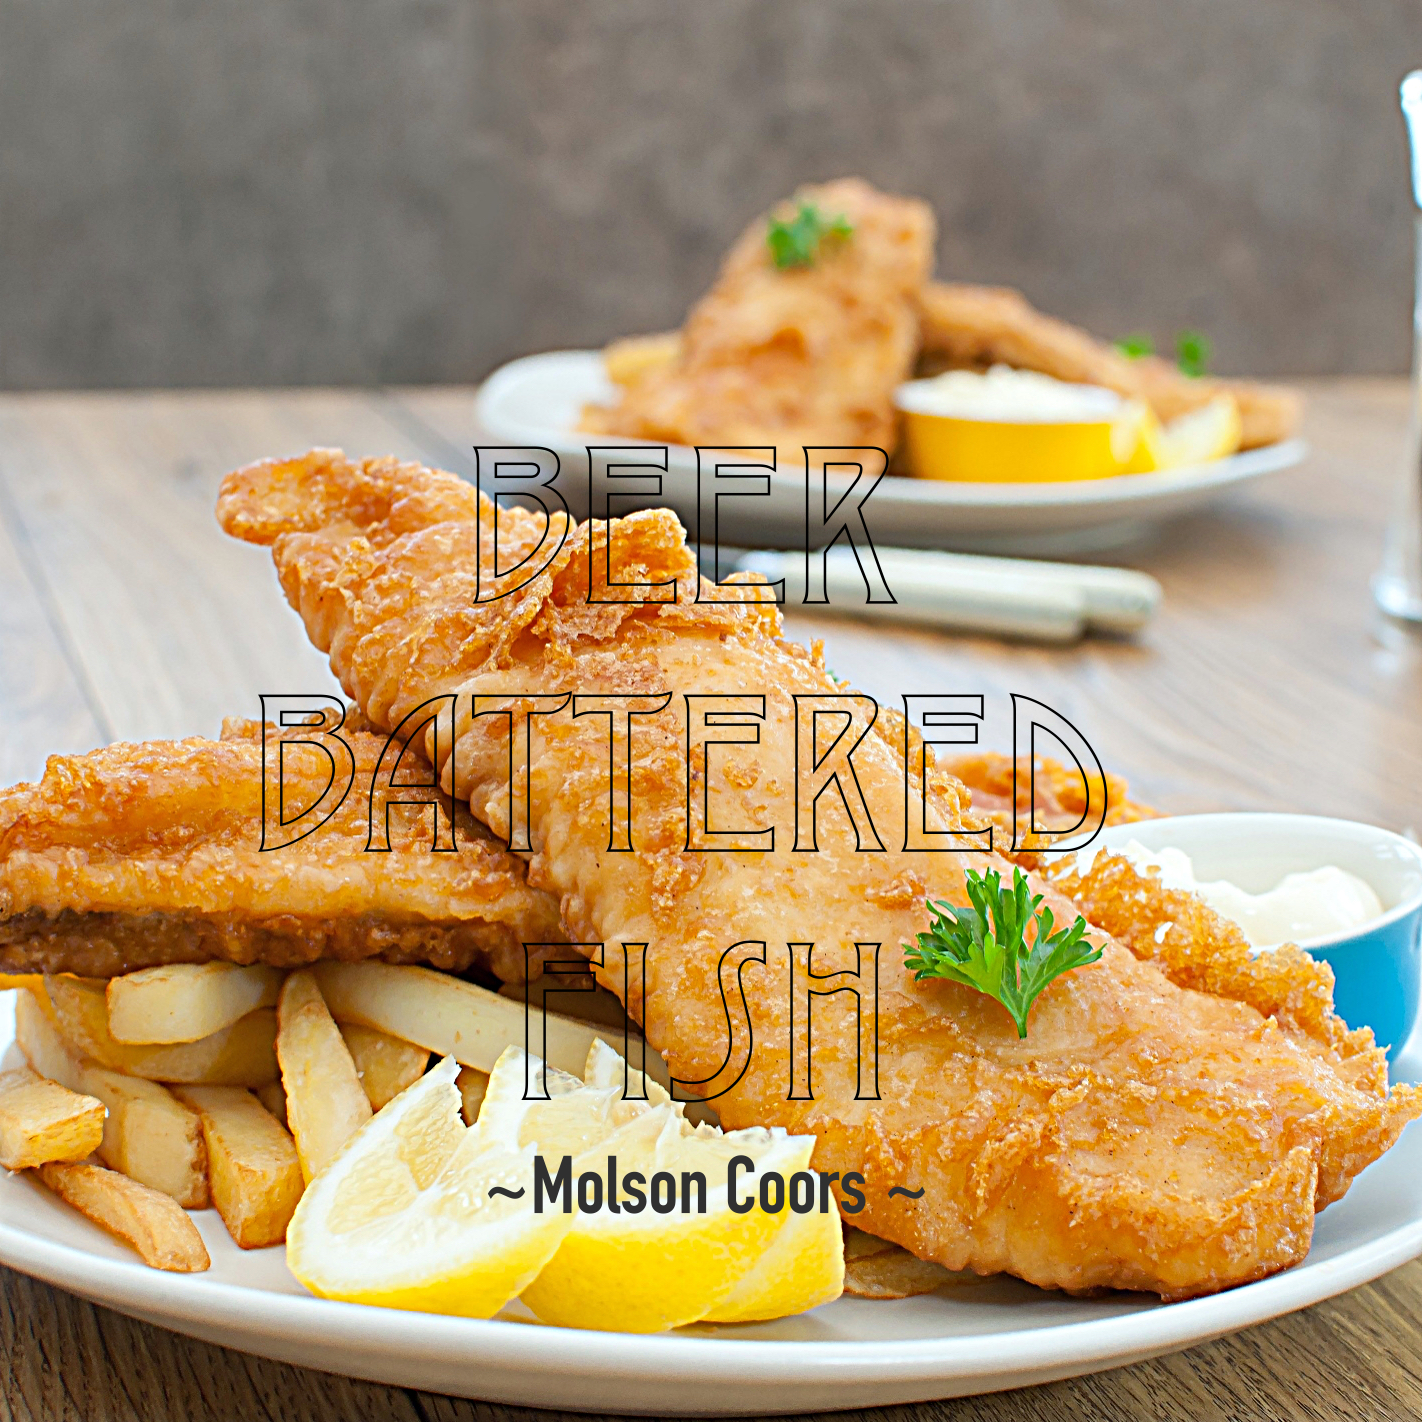 Molson Coors – Beer Battered Fish